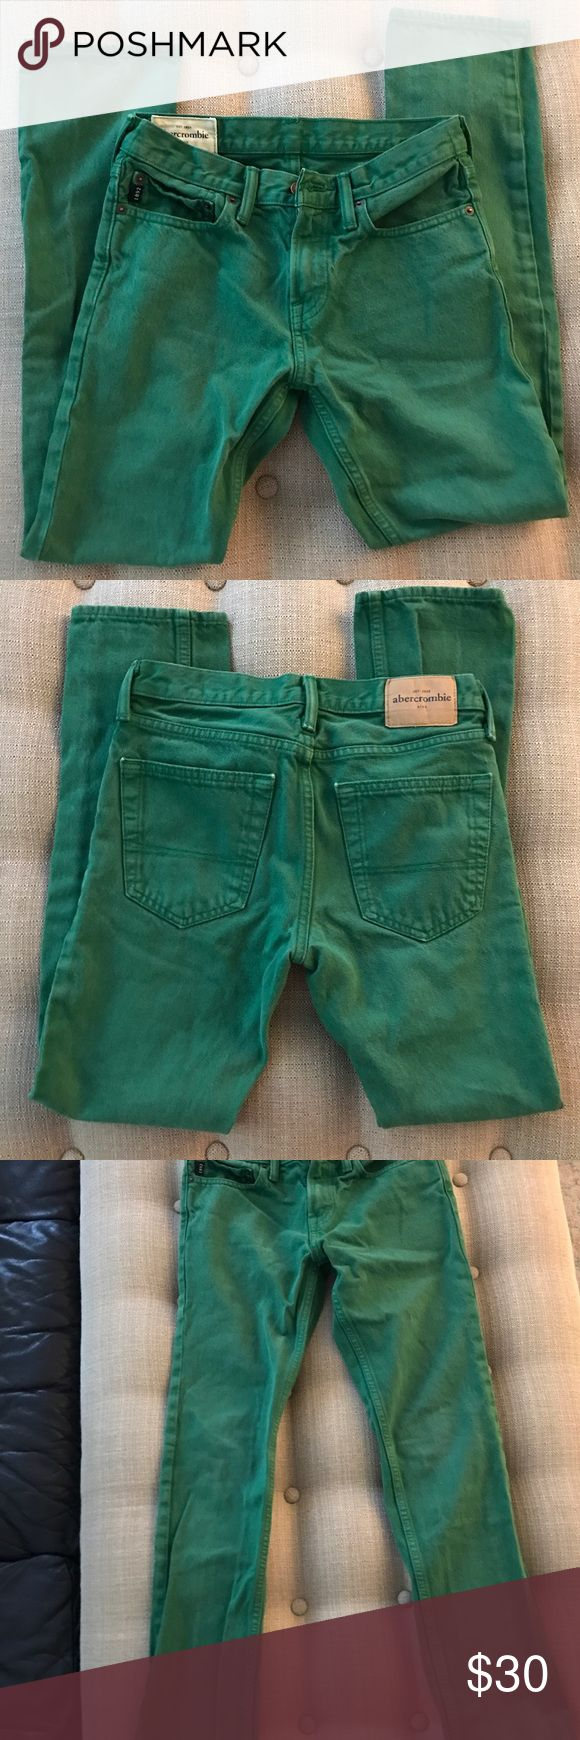 Abercrombie Girls Green Jeans Size 14 Abercrombie Girls Green Jeans. Size 14. Good used condition. Some fading from washing. See also slight flaw in crotch. Abercombie Kids Bottoms Jeans